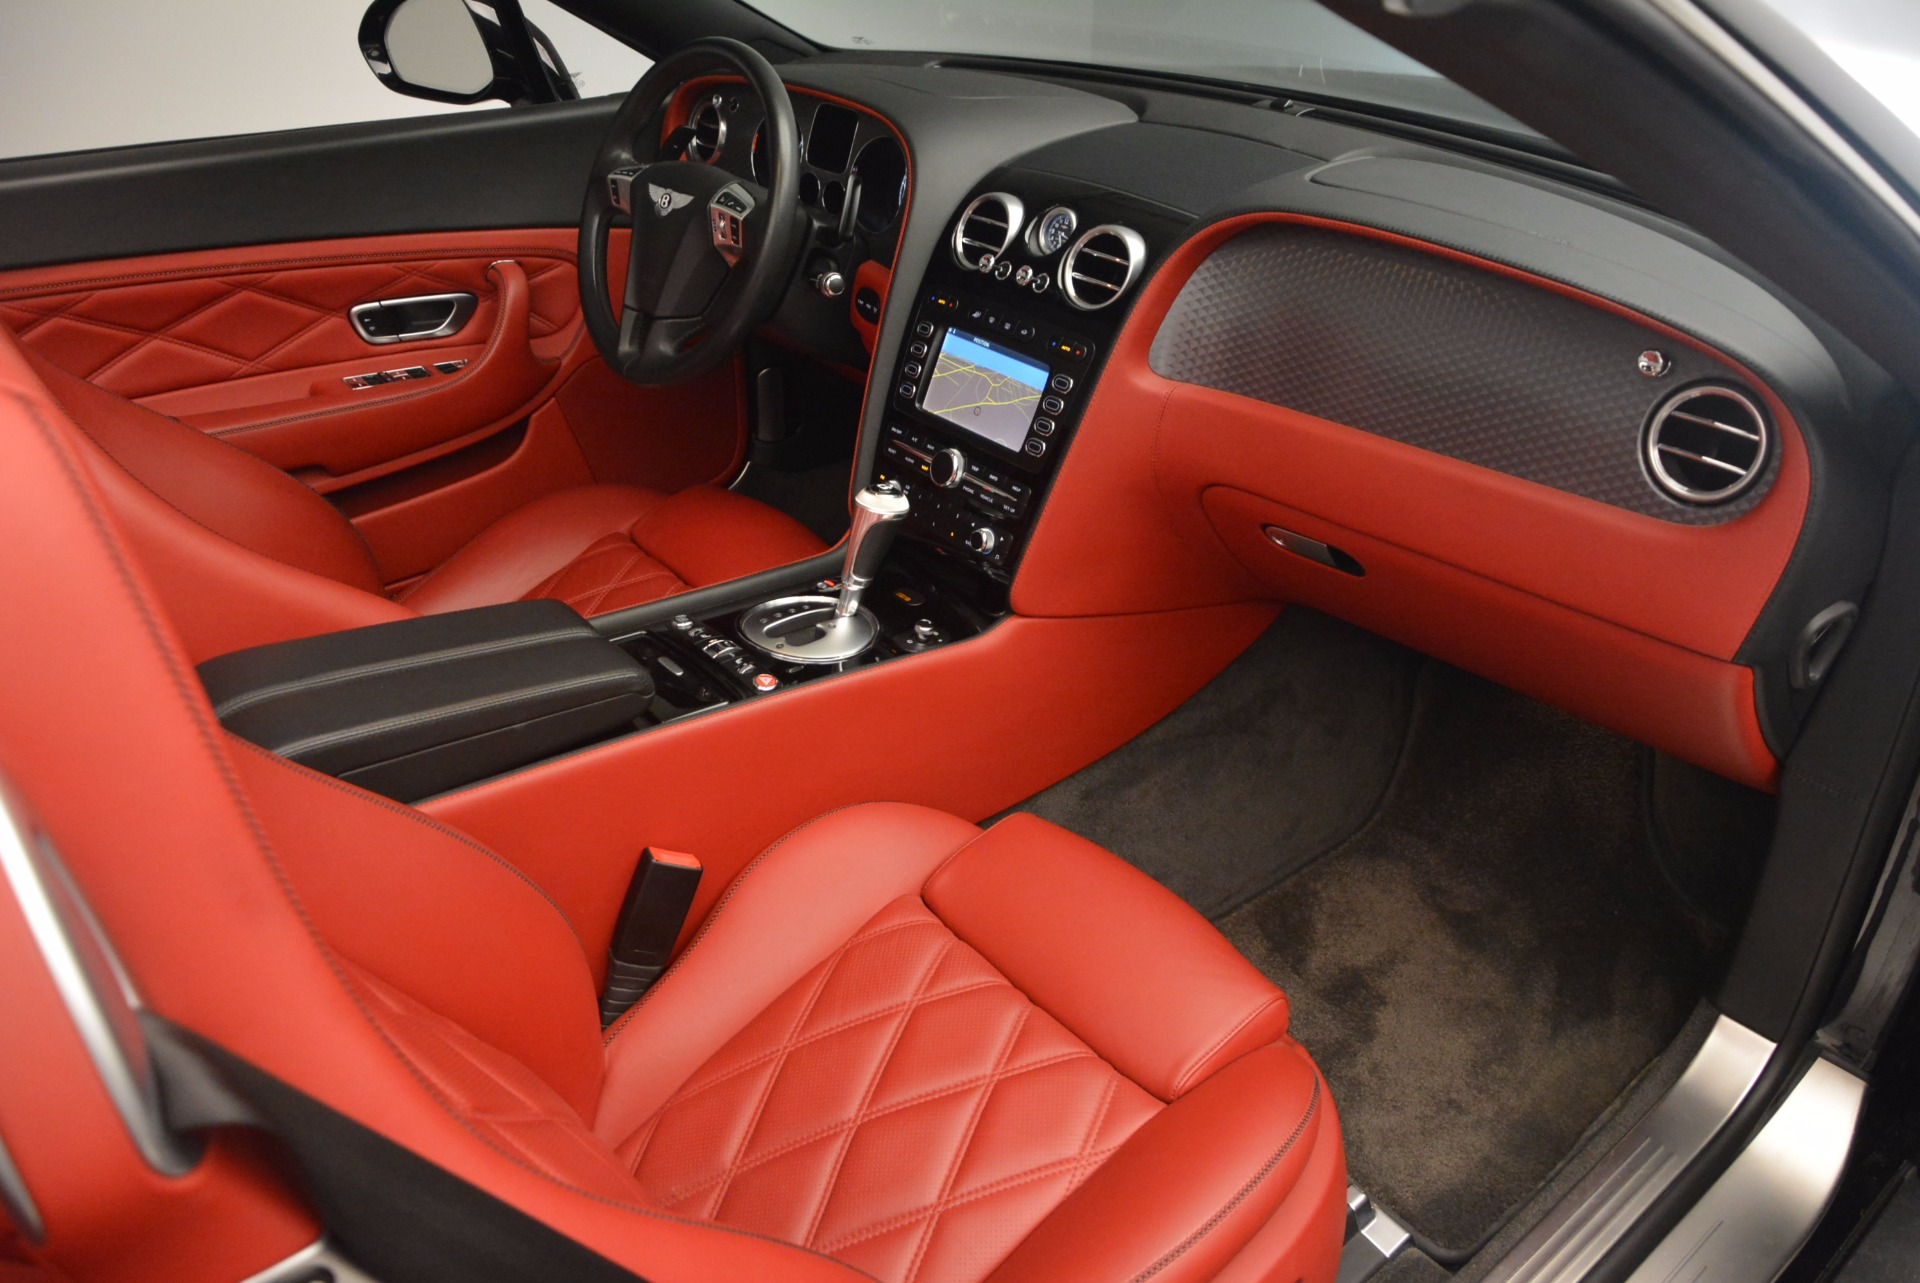 Used 2010 Bentley Continental GT Speed For Sale In Westport, CT 1298_p43